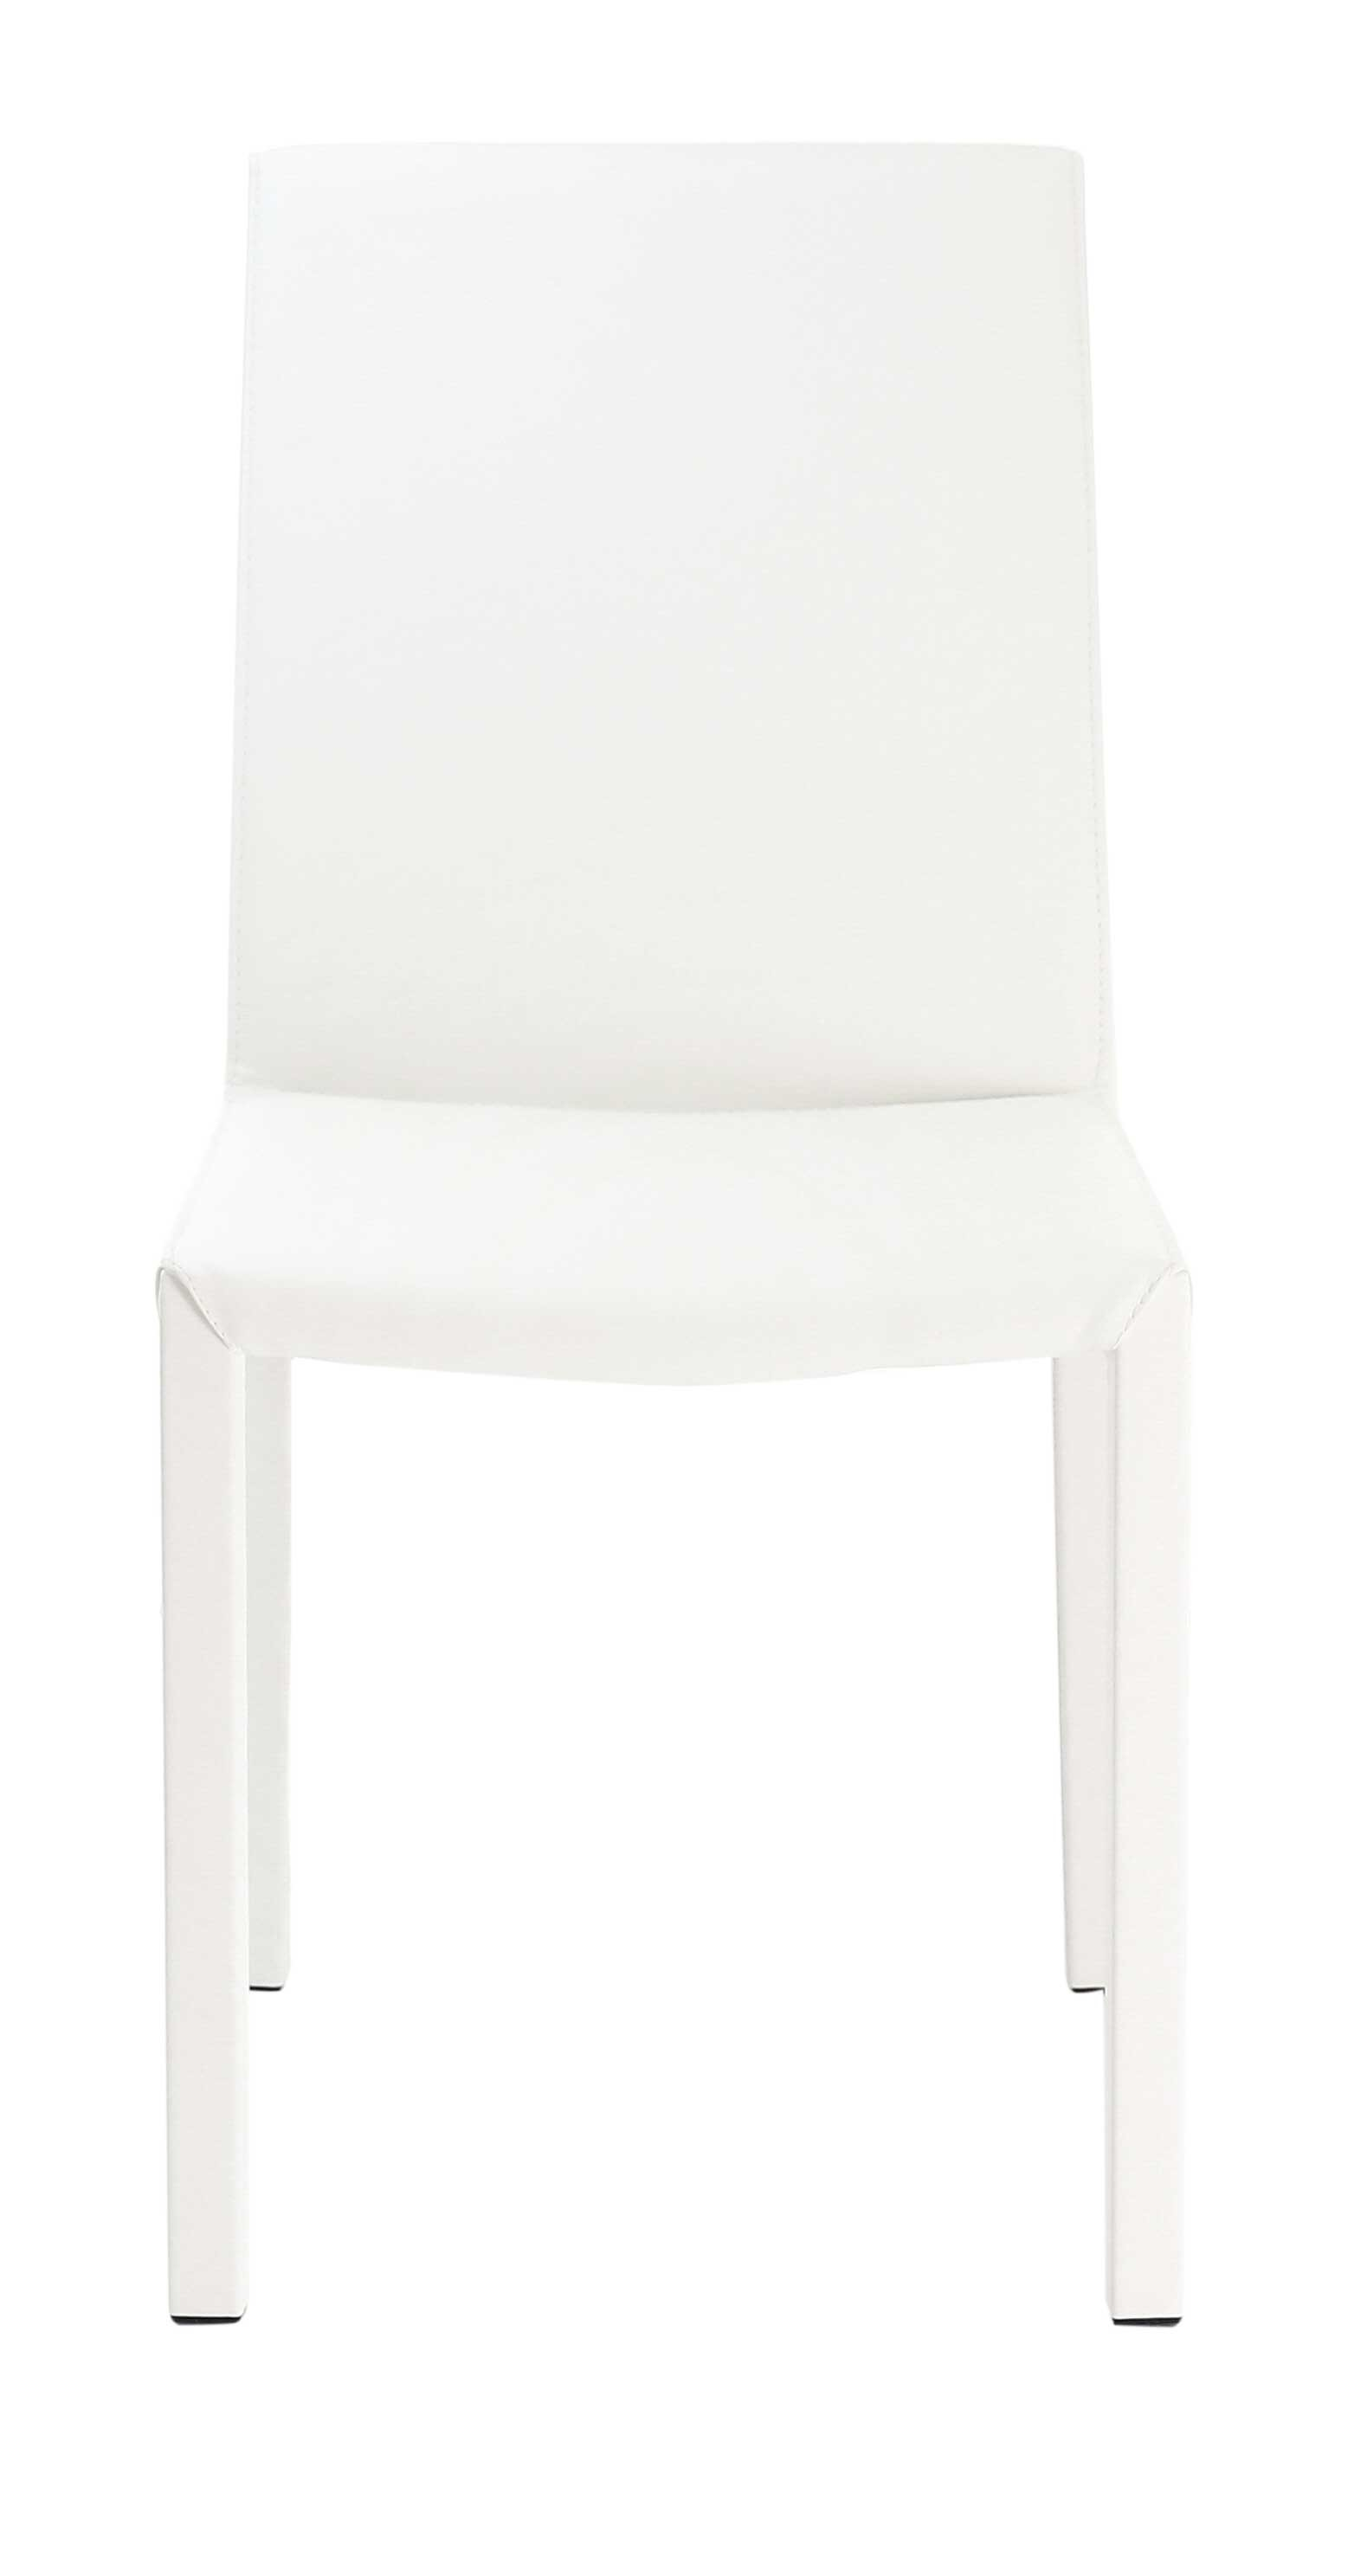 Chaise nunzia blanche for Chaise d implantation